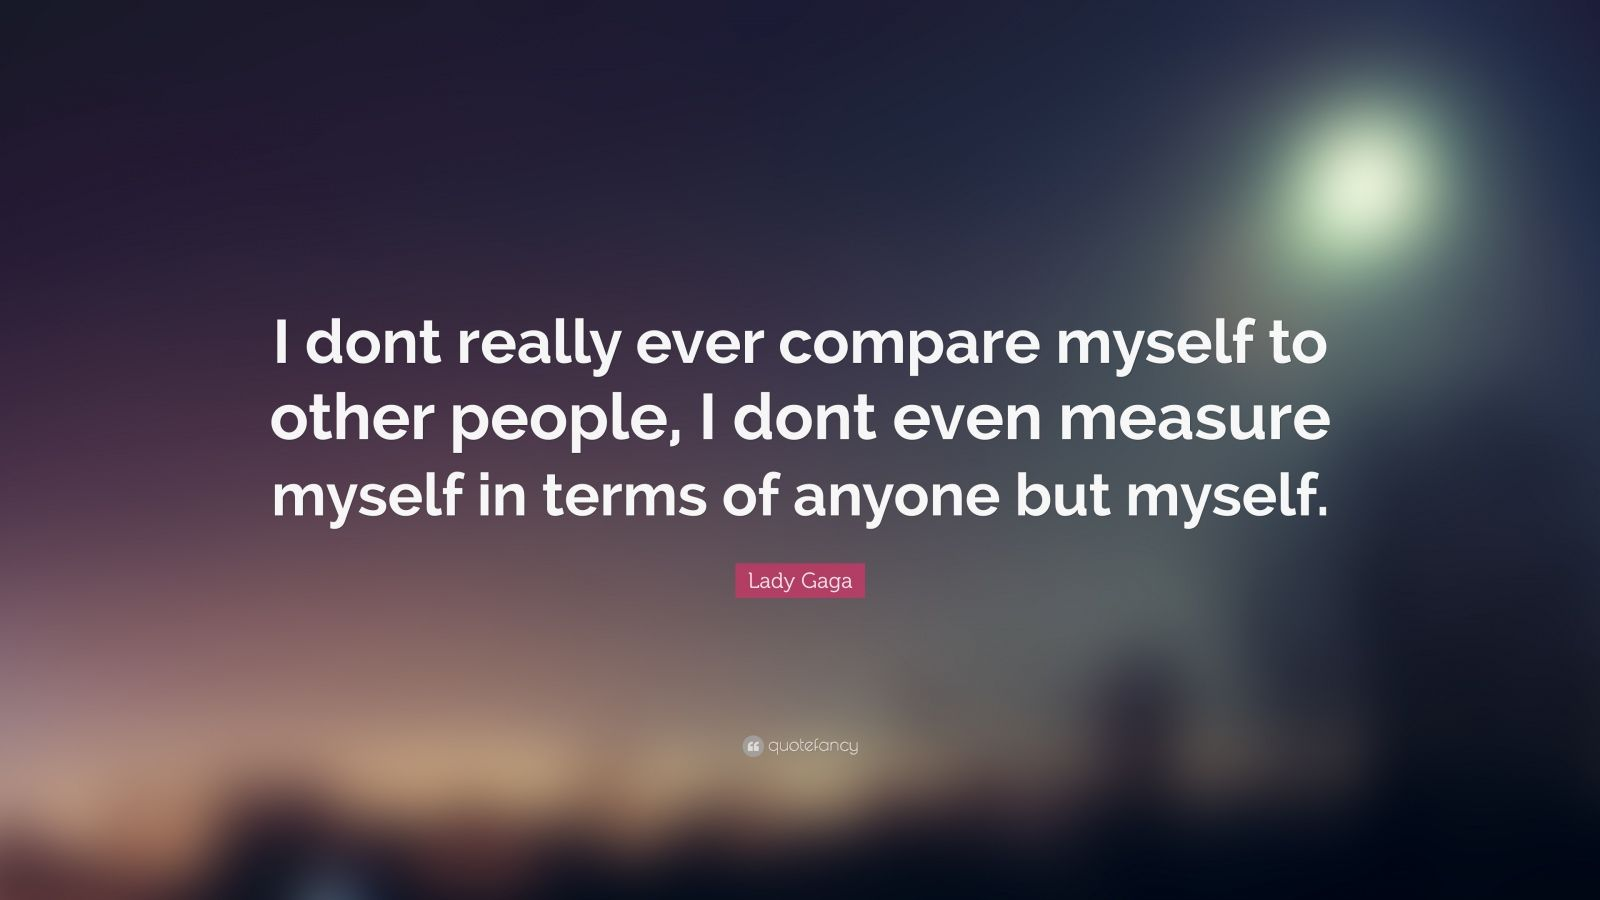 """Lady Gaga Quote: """"I dont really ever compare myself to other people, I dont even measure myself in terms of anyone but myself."""""""